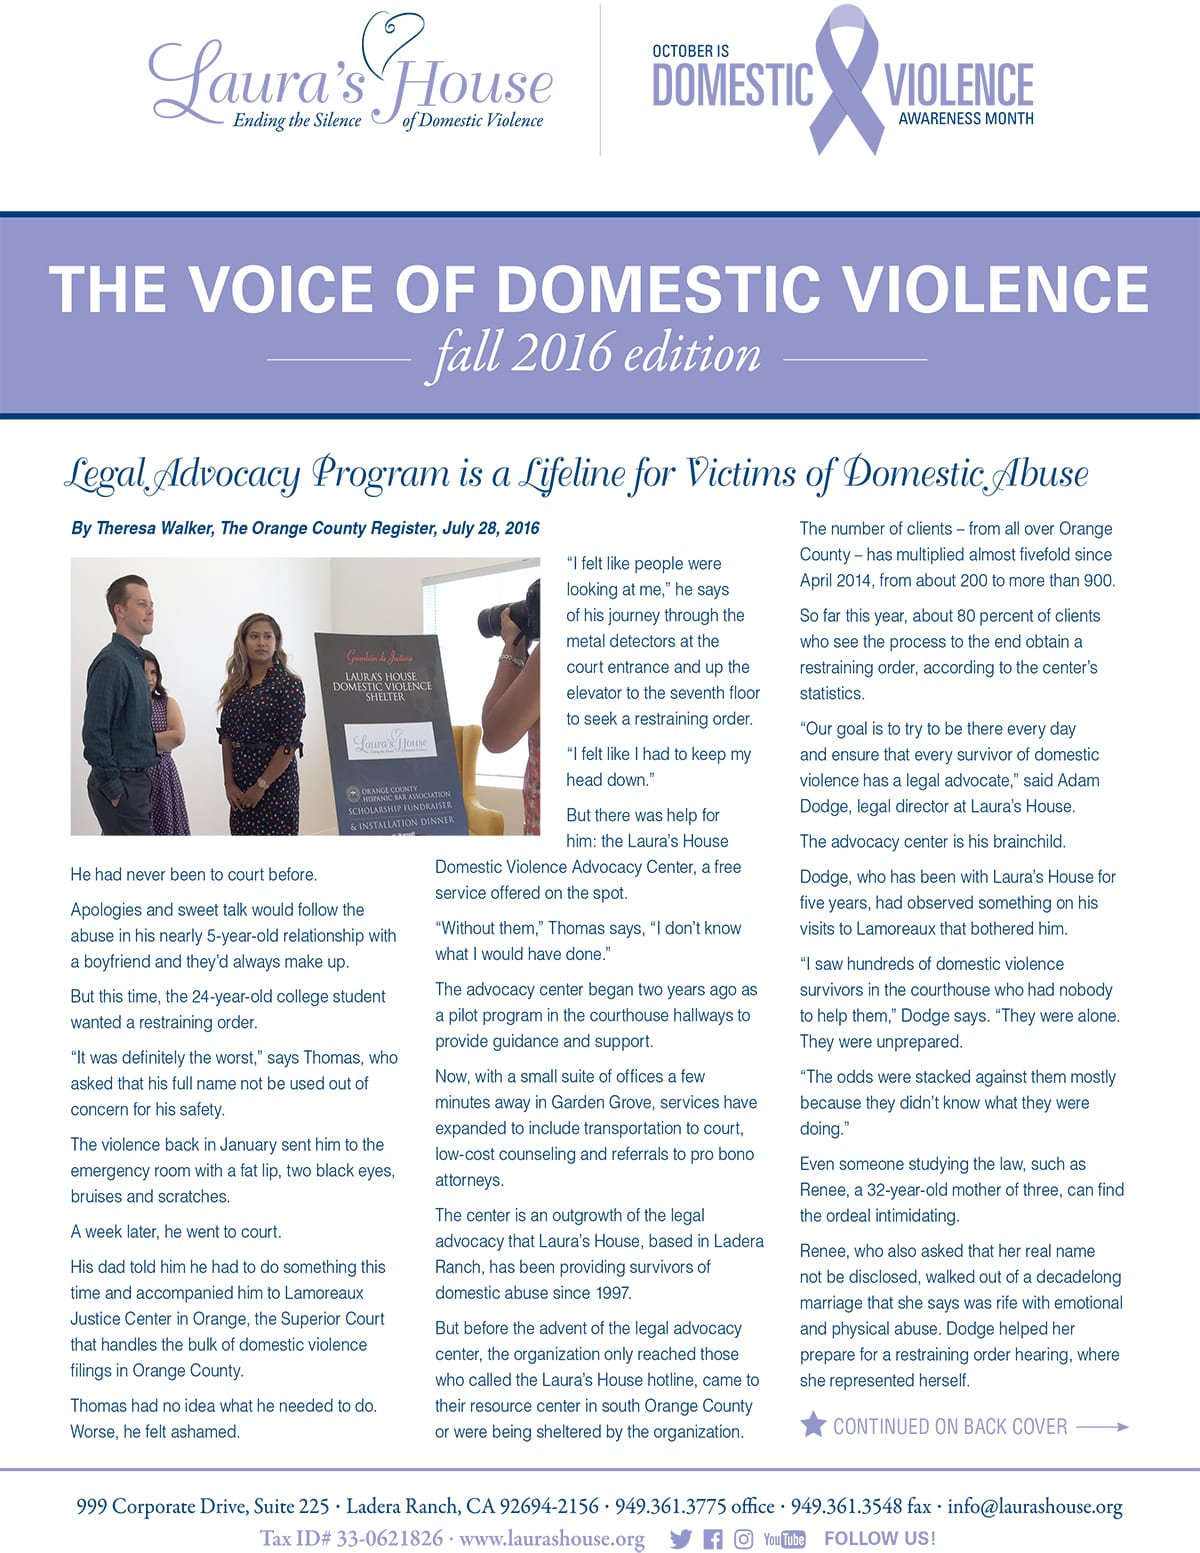 The Voice of Domestic Violence - Fall 2016 edition